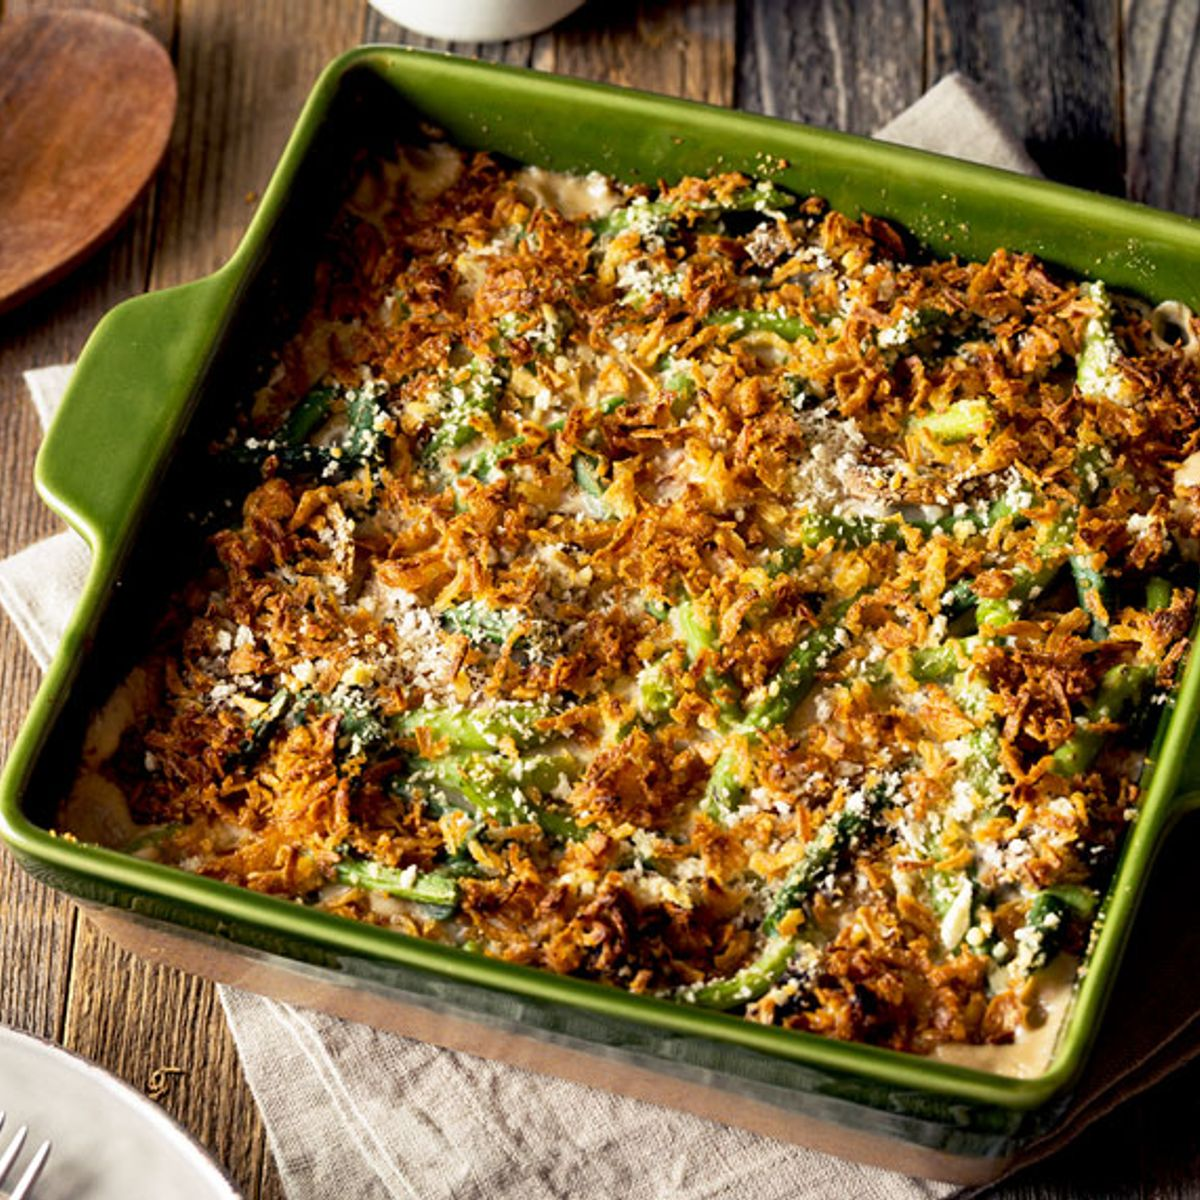 Eat this green bean casserole made with love or stop complaining about it